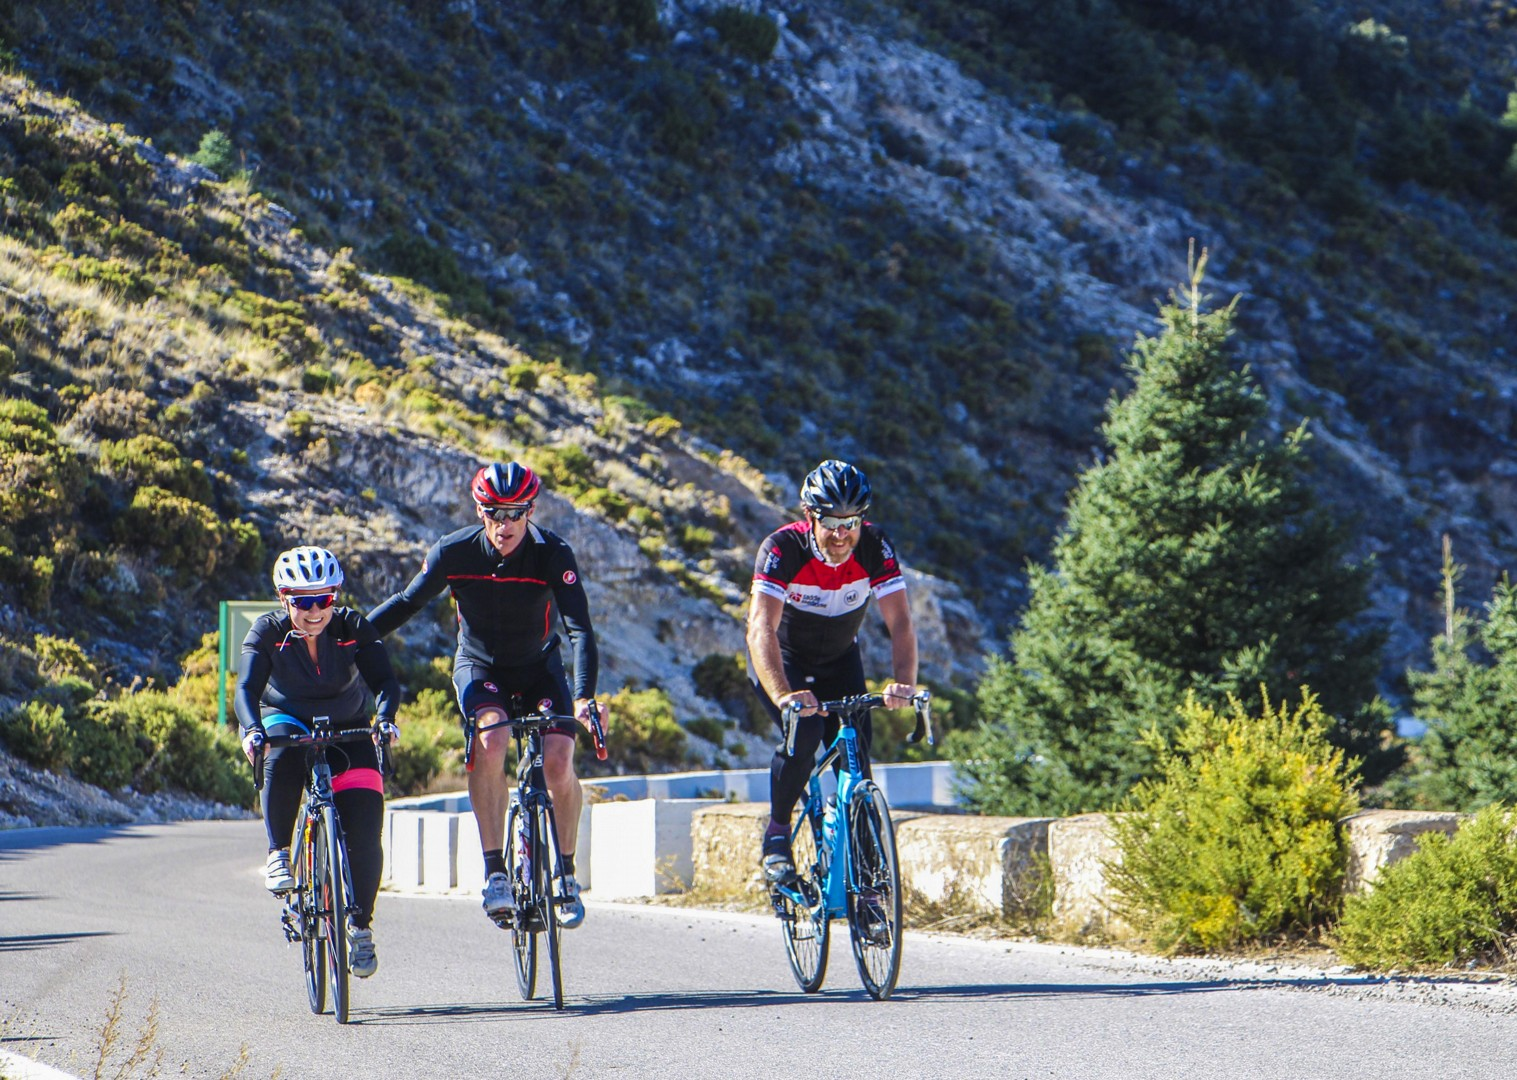 guided-road-cycling-adventure-roads-of-ronda-friendly-atmosphere-group.jpg - Southern Spain - Roads of Ronda - Guided Road Cycling Holiday - Road Cycling